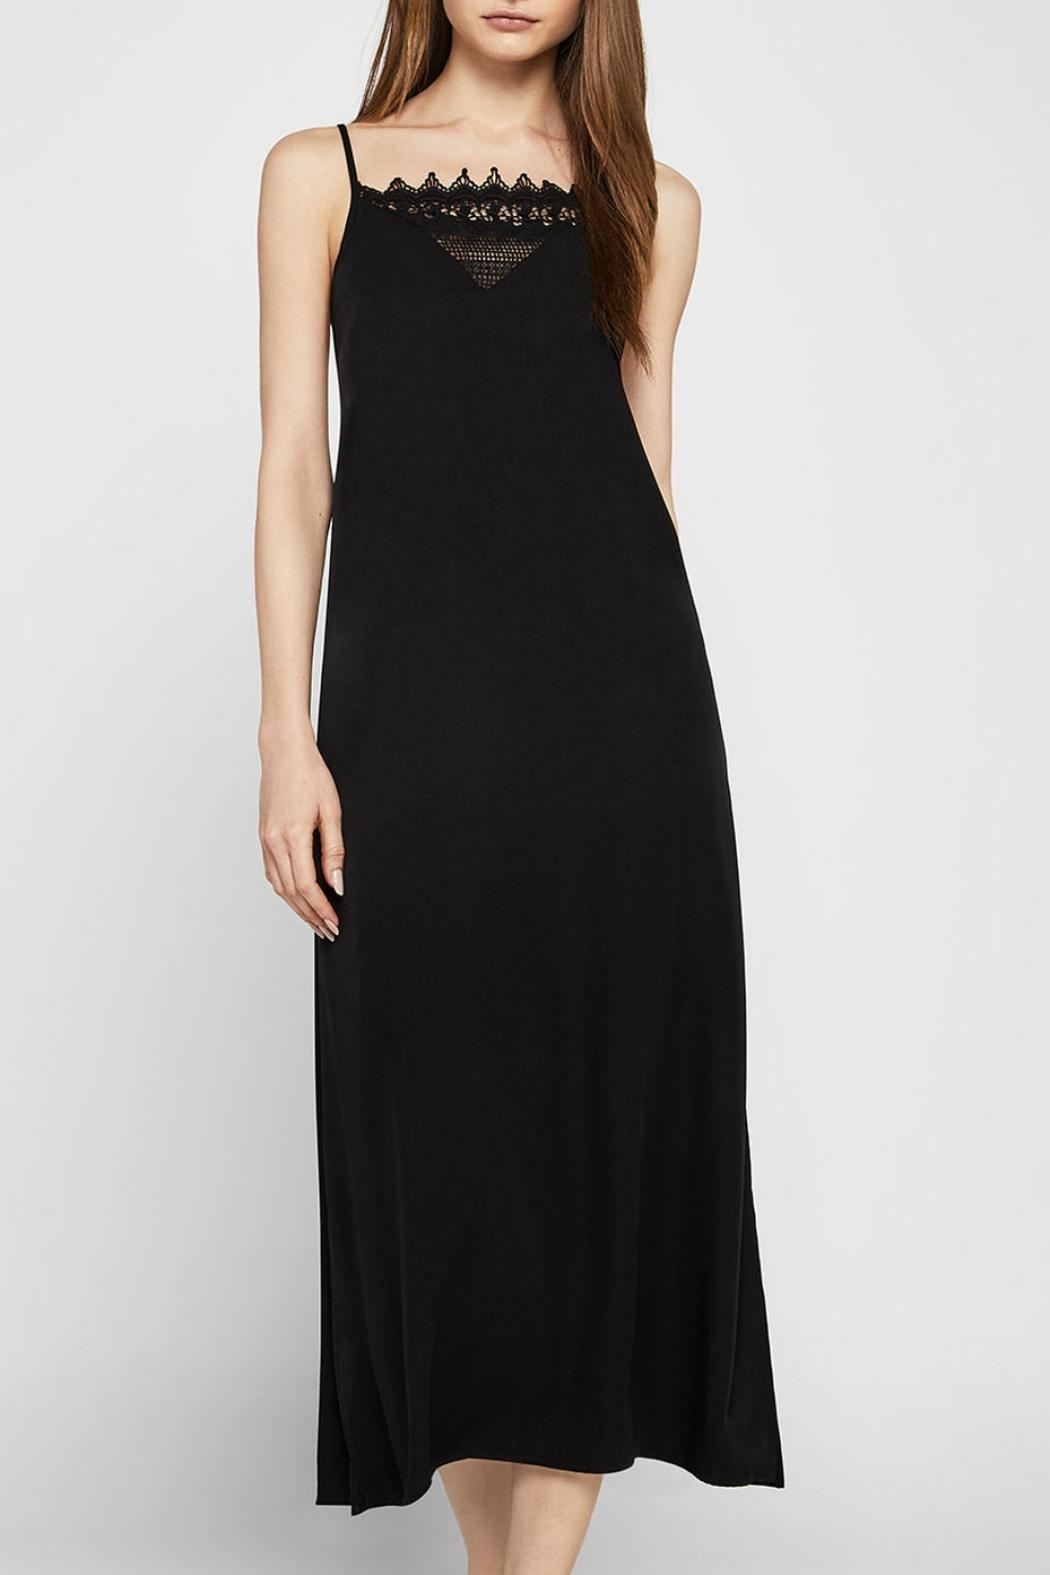 BCBGeneration Lace Midi Dress - Main Image